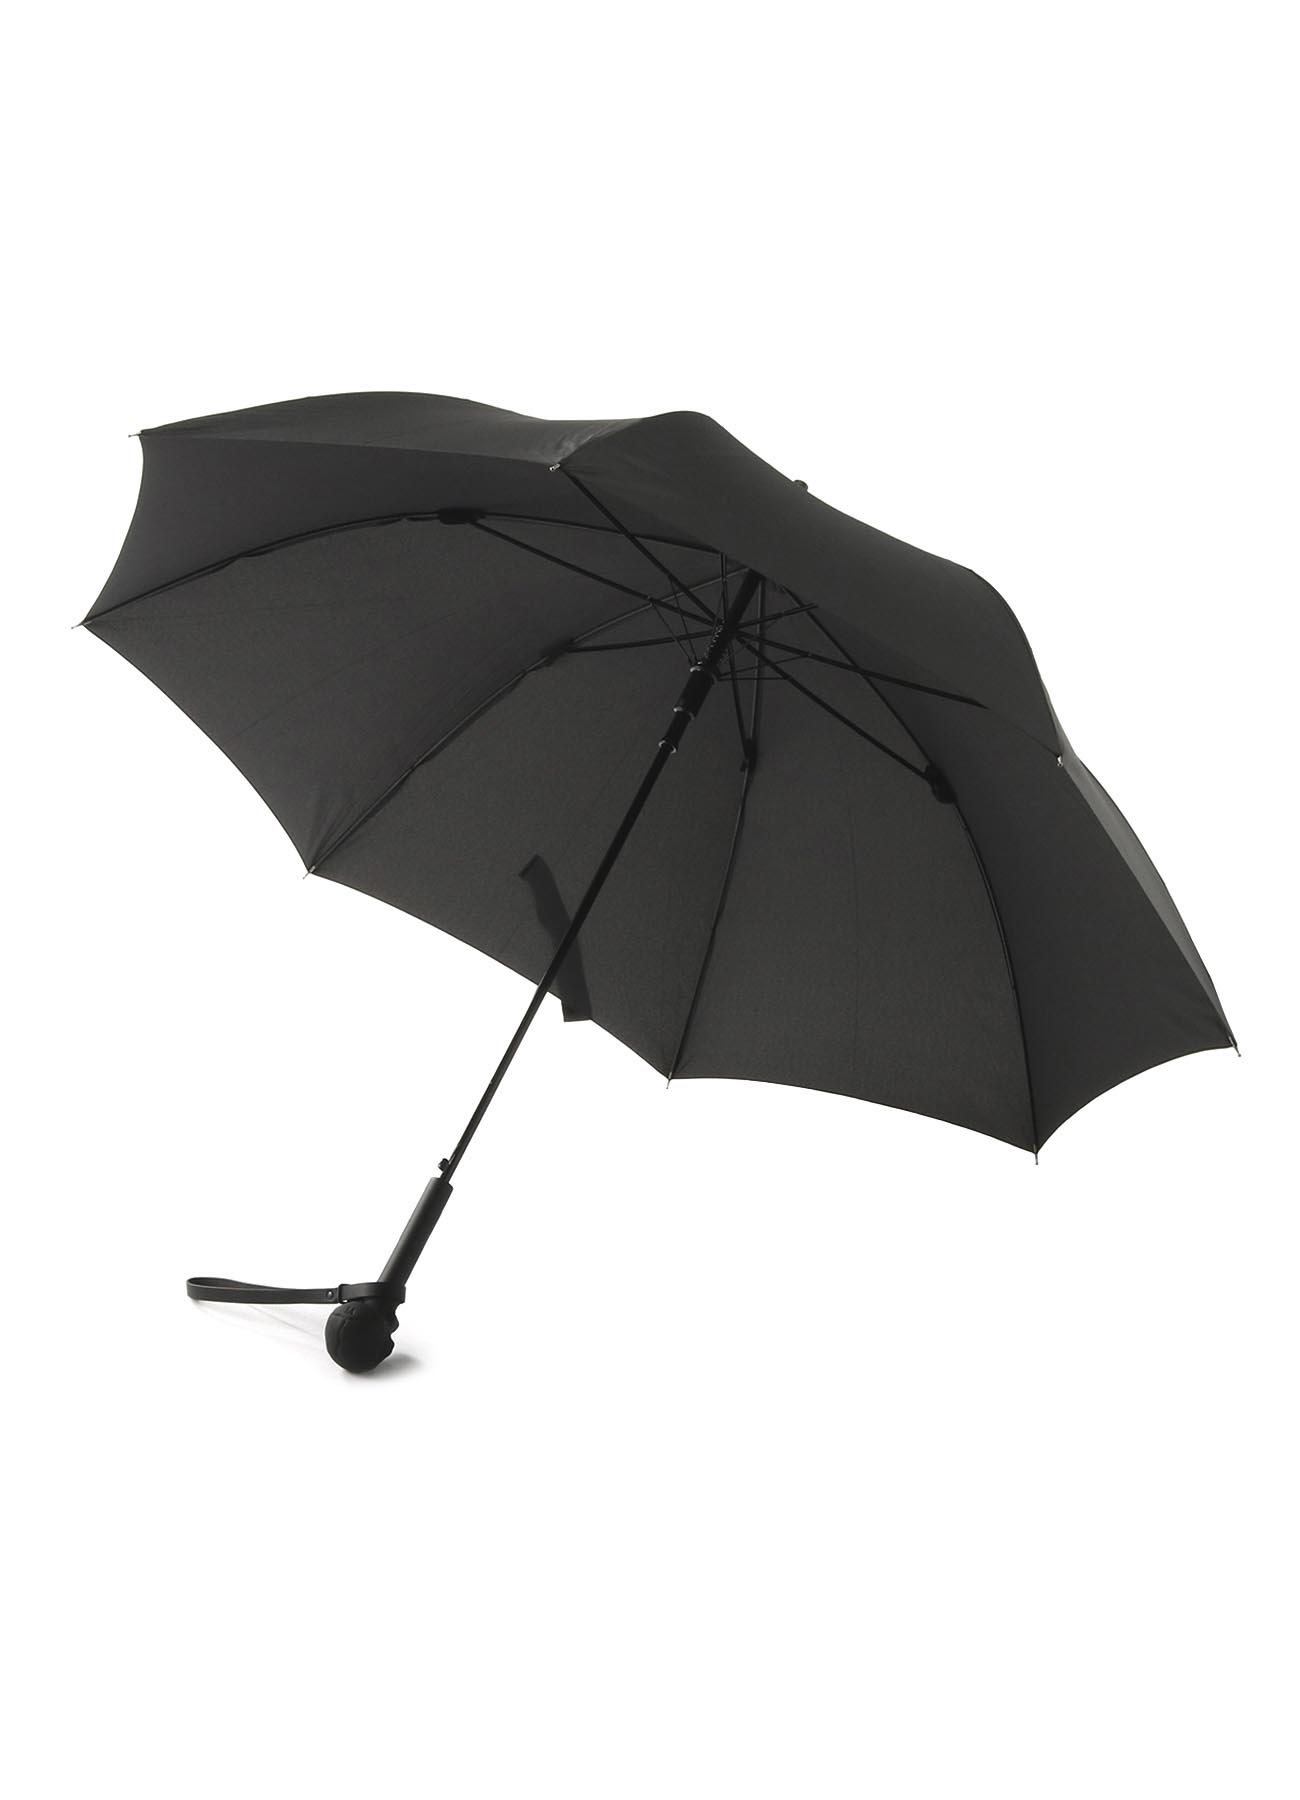 WATER PROOF NYLON SKULL UMBRELLA